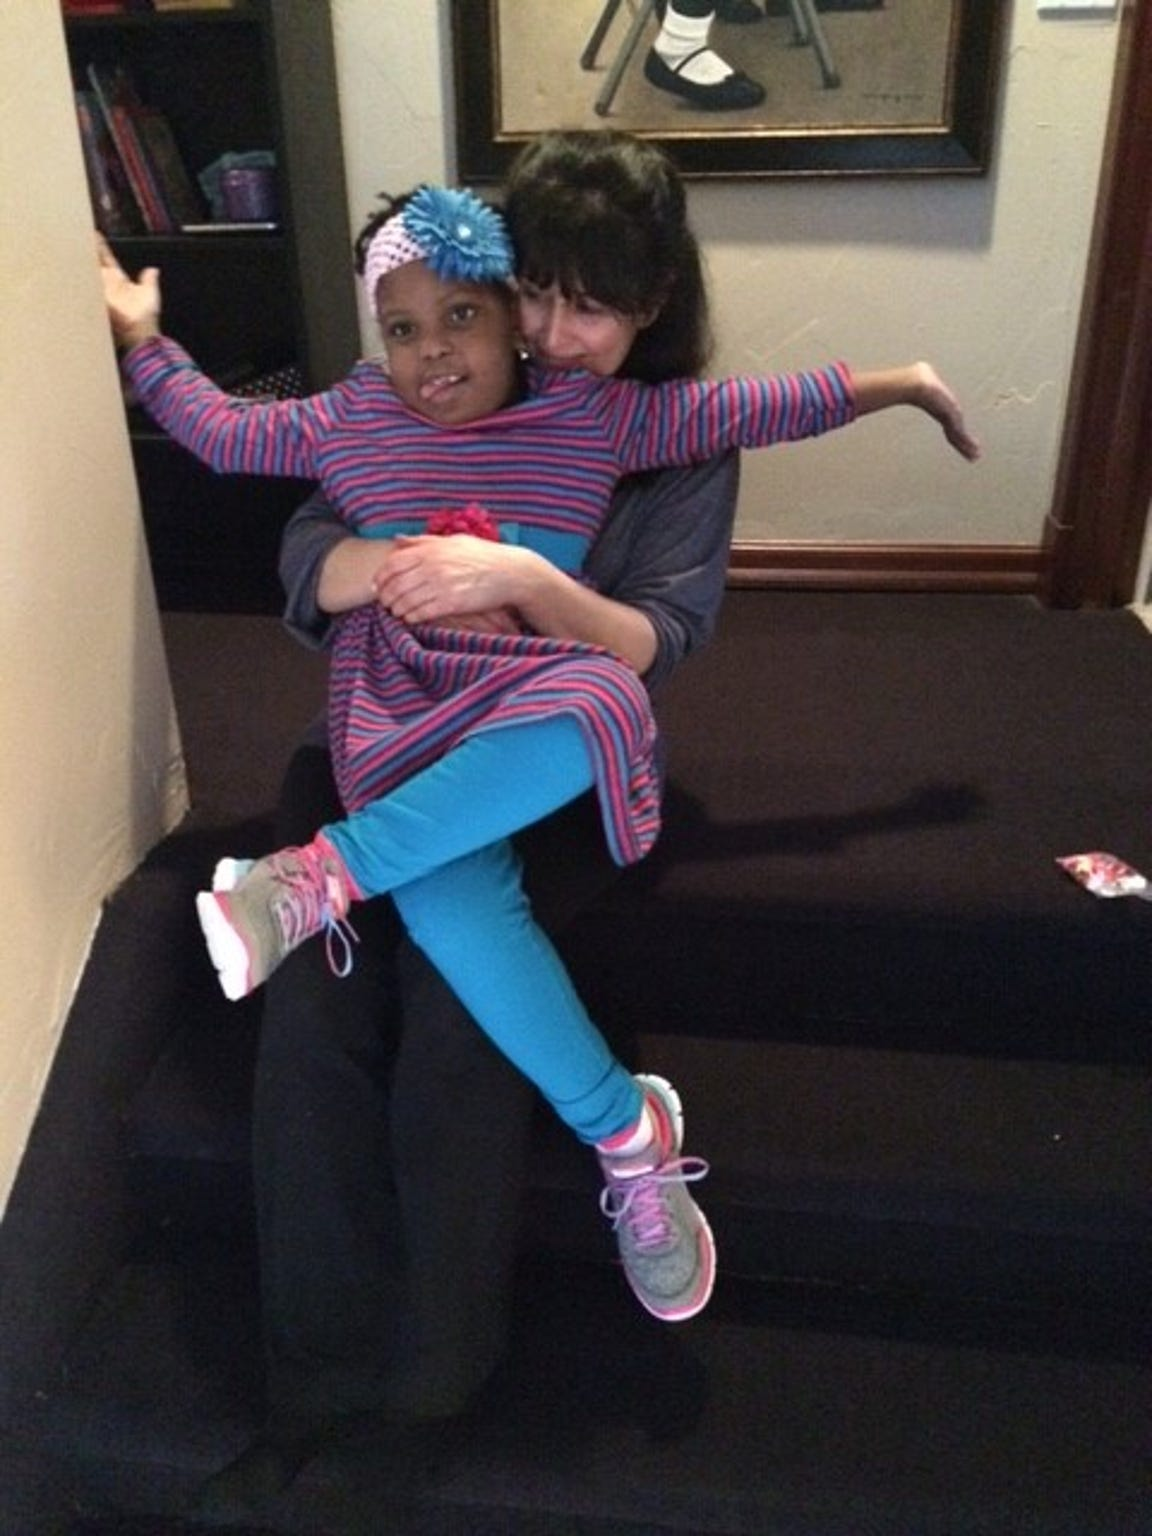 Chika and Janine Albom goof around in March 2016. The